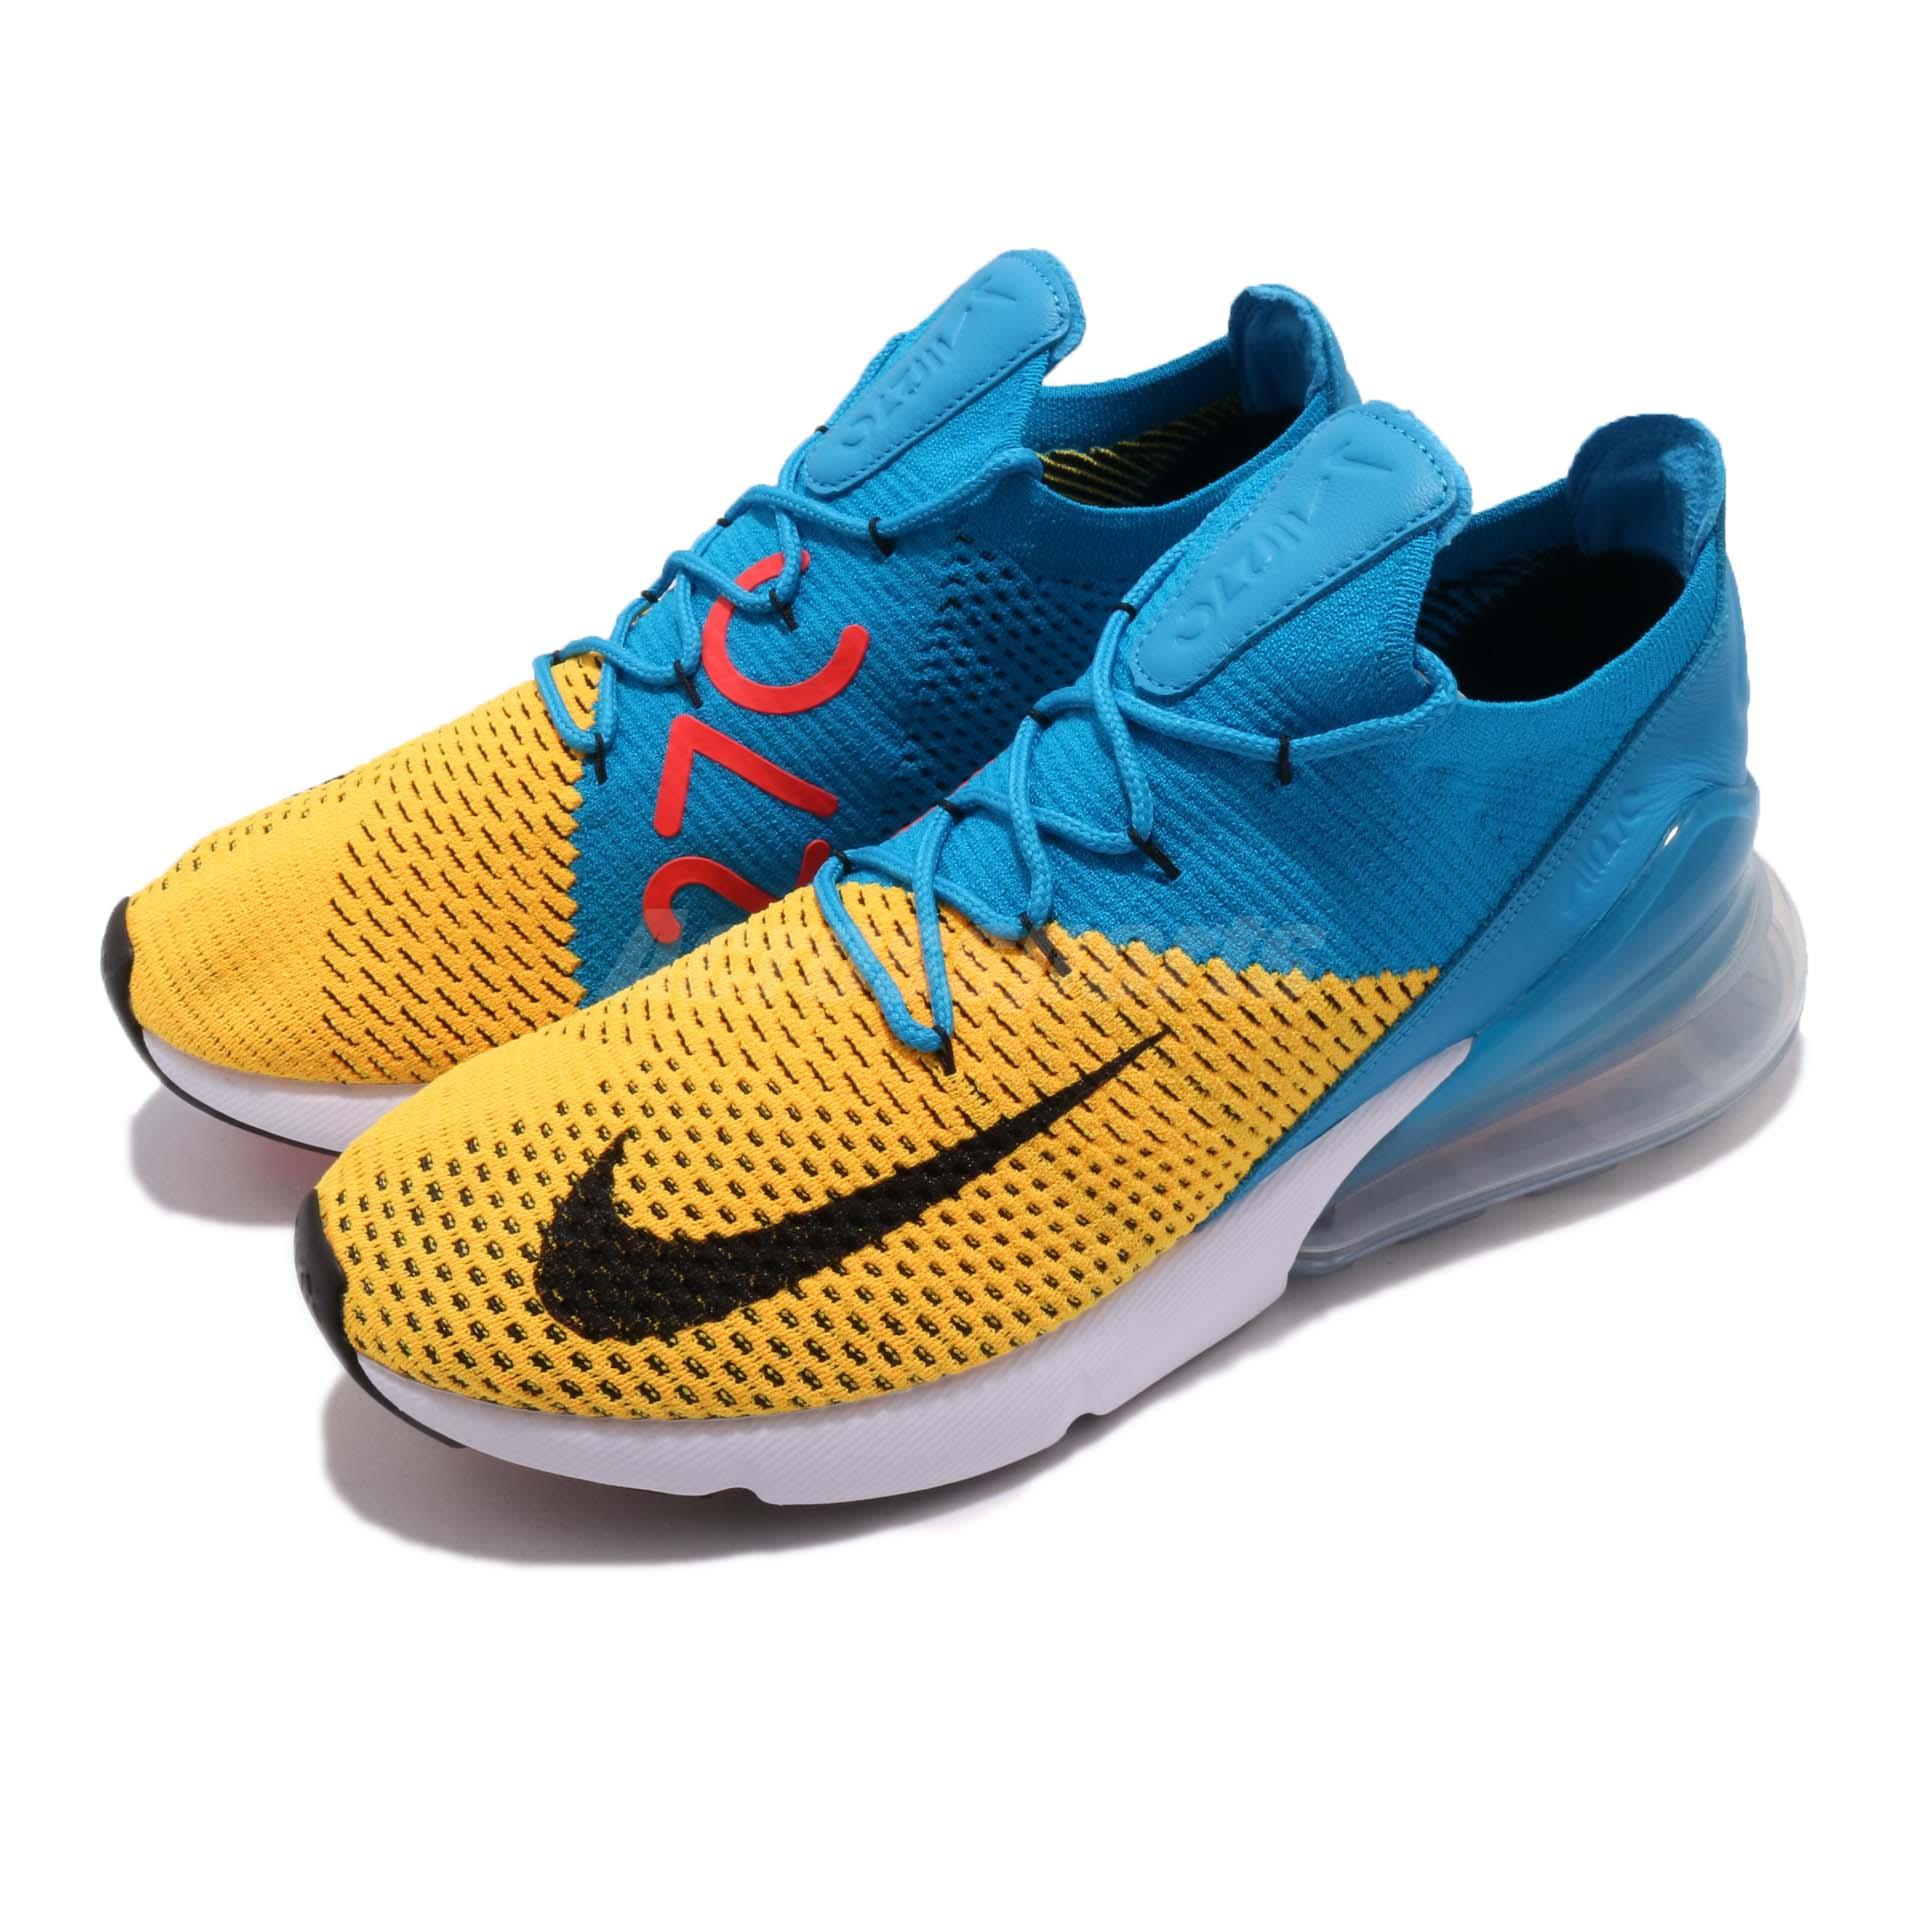 timeless design 5735c 91f2c Details about Nike Air Max 270 Flyknit FK Laser Orange Blue Orbit Men  Running Shoes AO1023-800